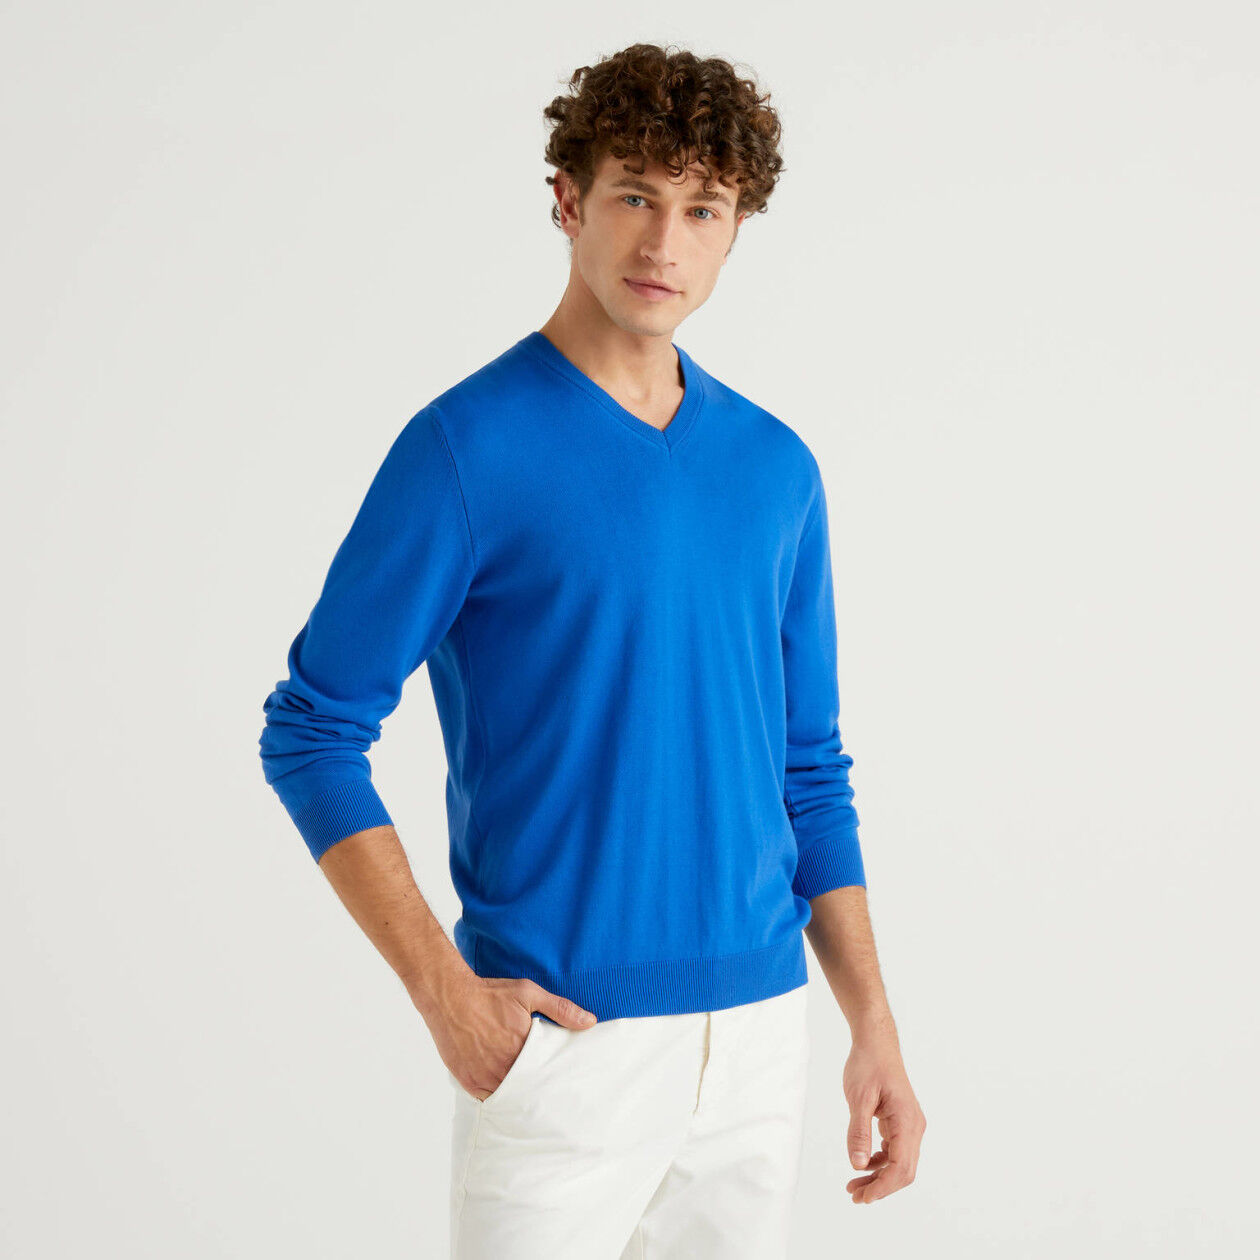 V-neck sweater in 100% cotton